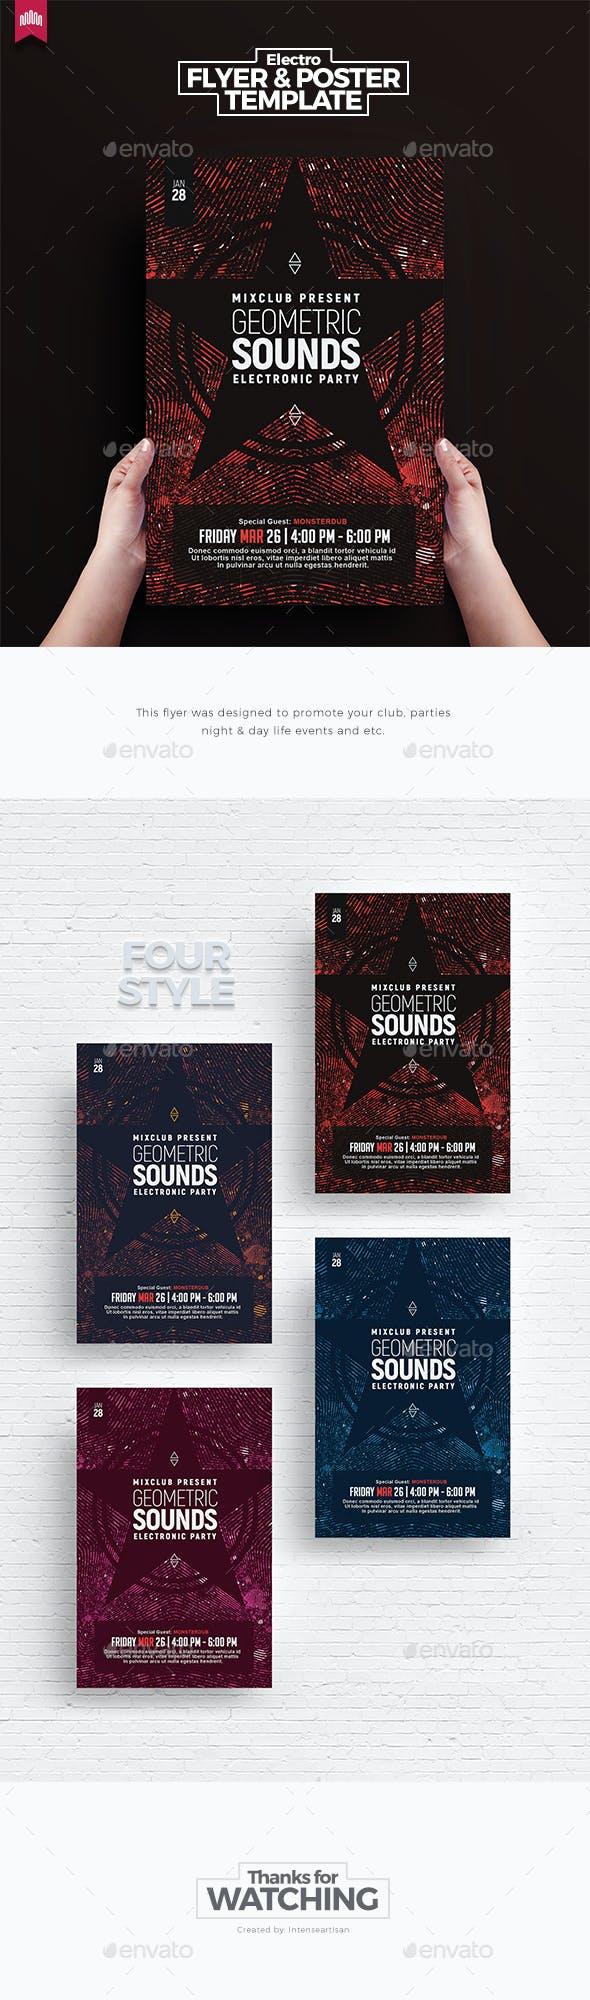 Geometric Sound - Flyer Template